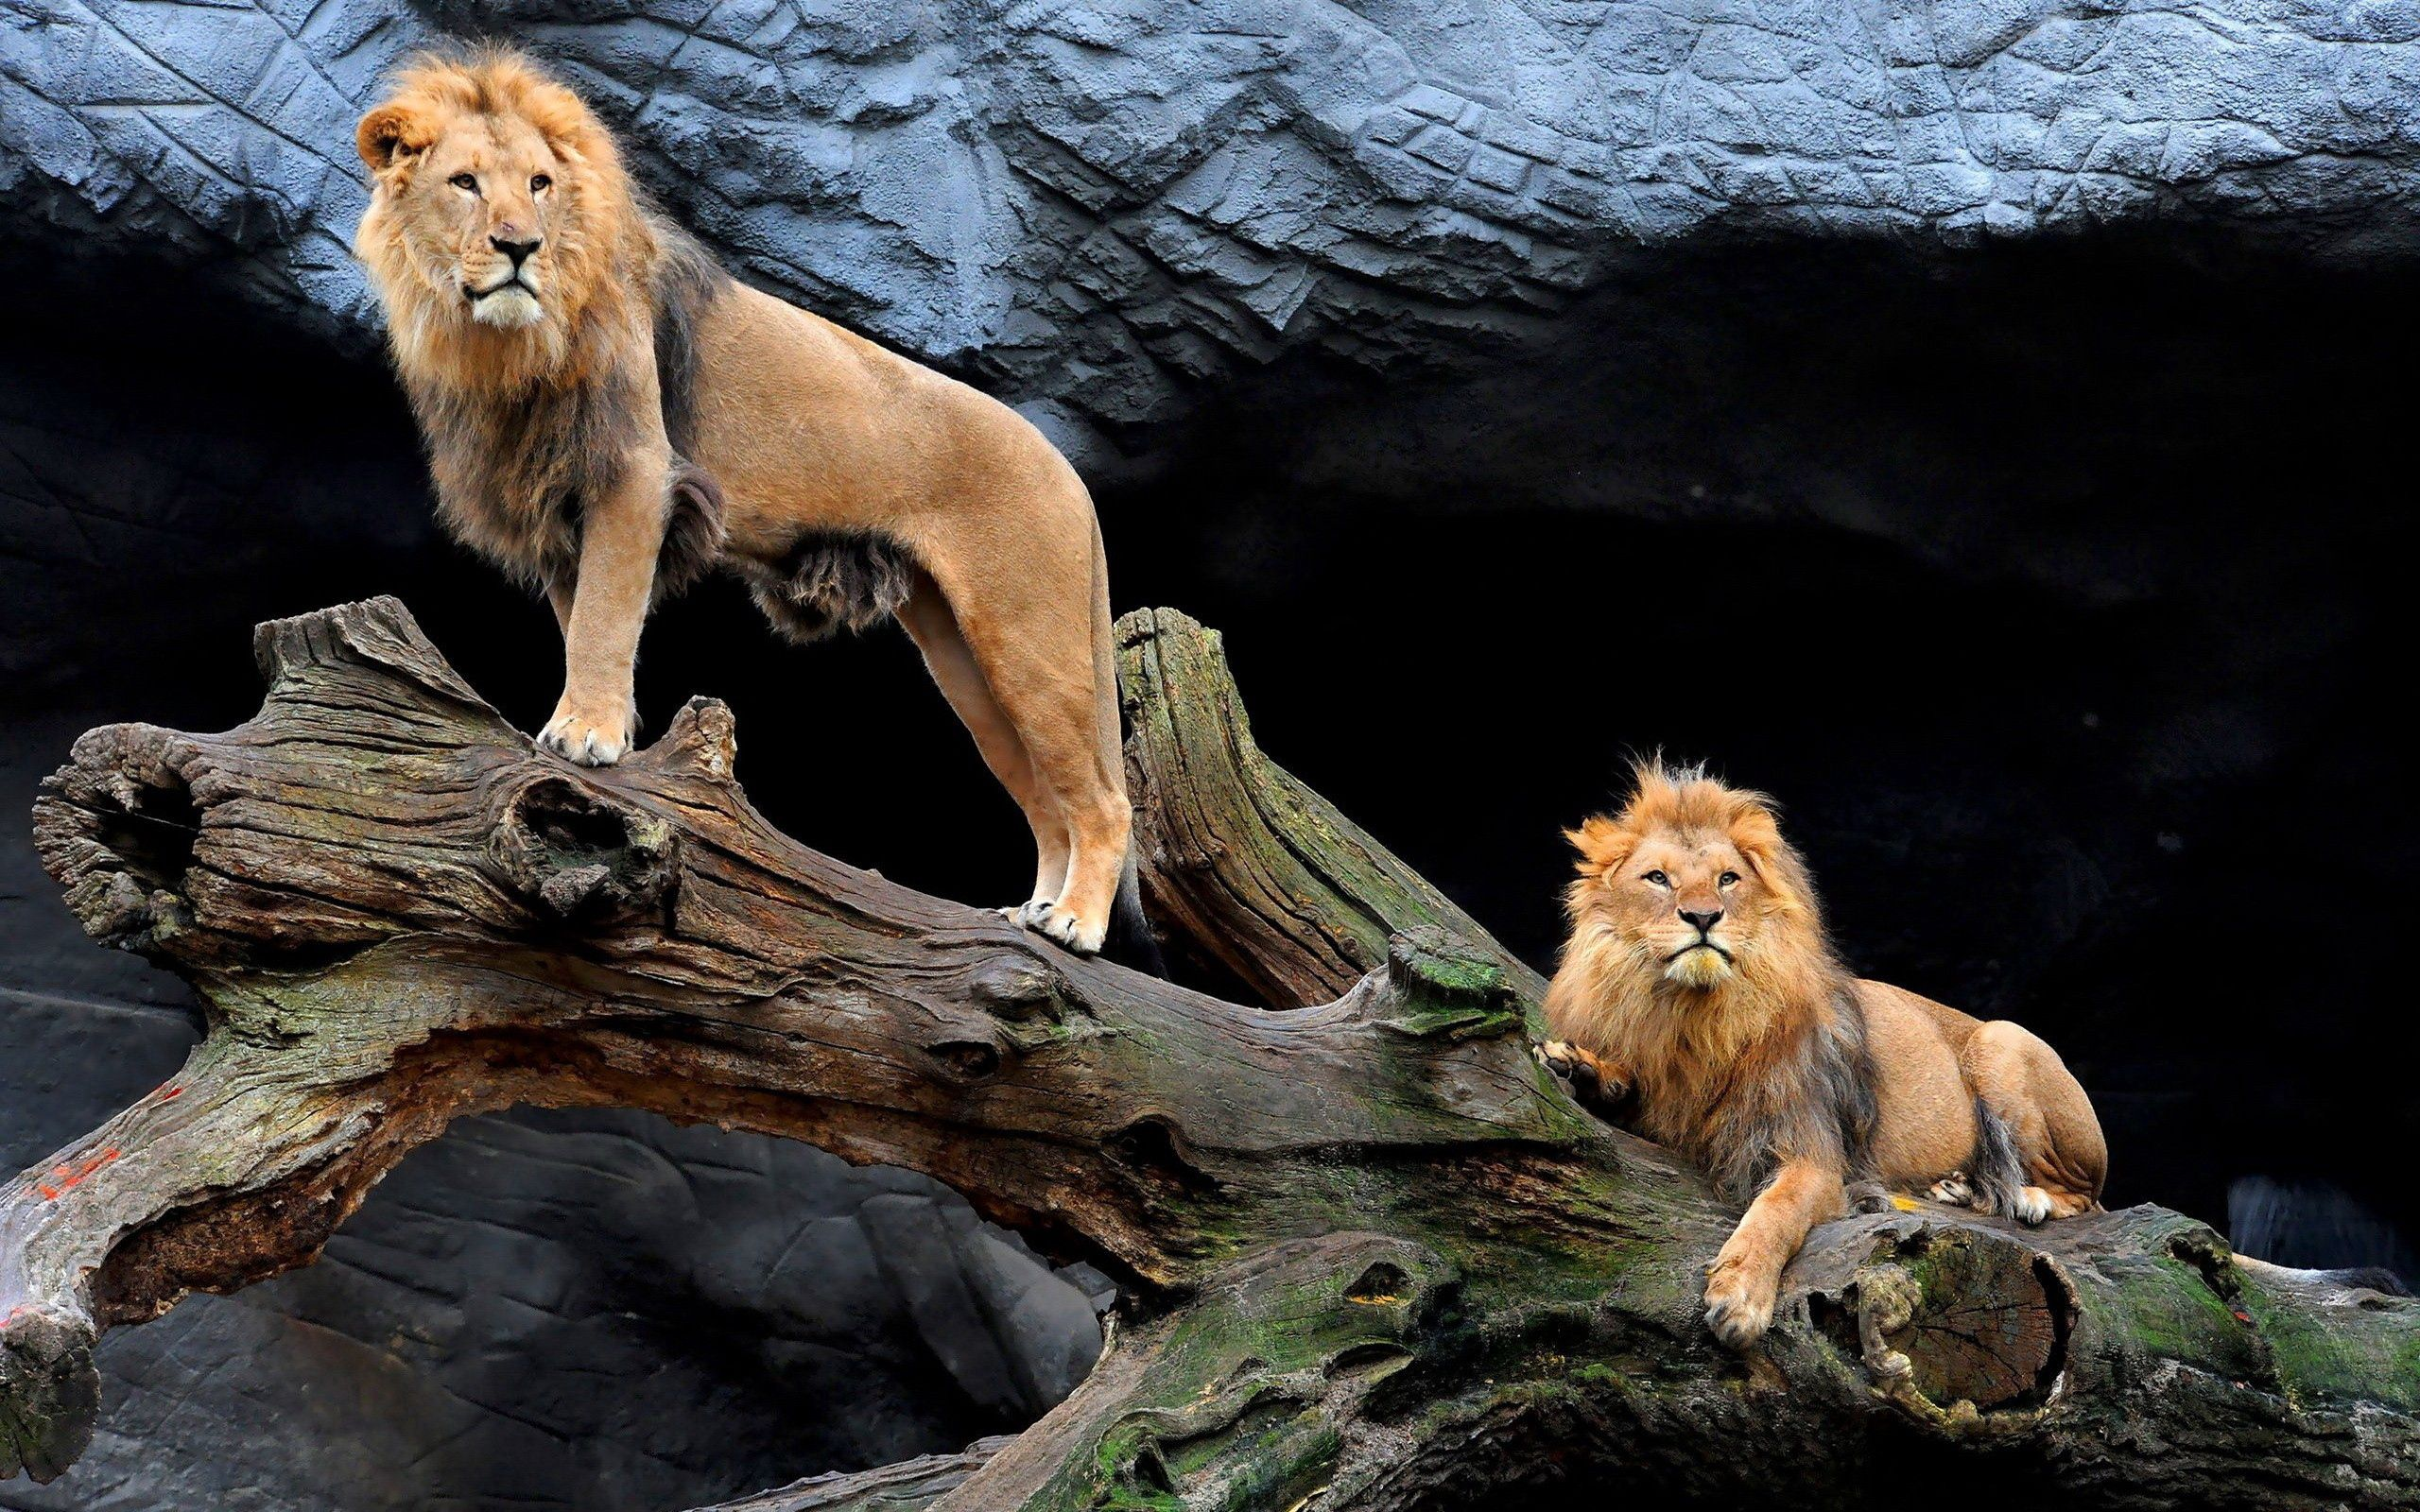 114521 download wallpaper Animals, Couple, Pair, Wood, Tree, Sit, Lions screensavers and pictures for free